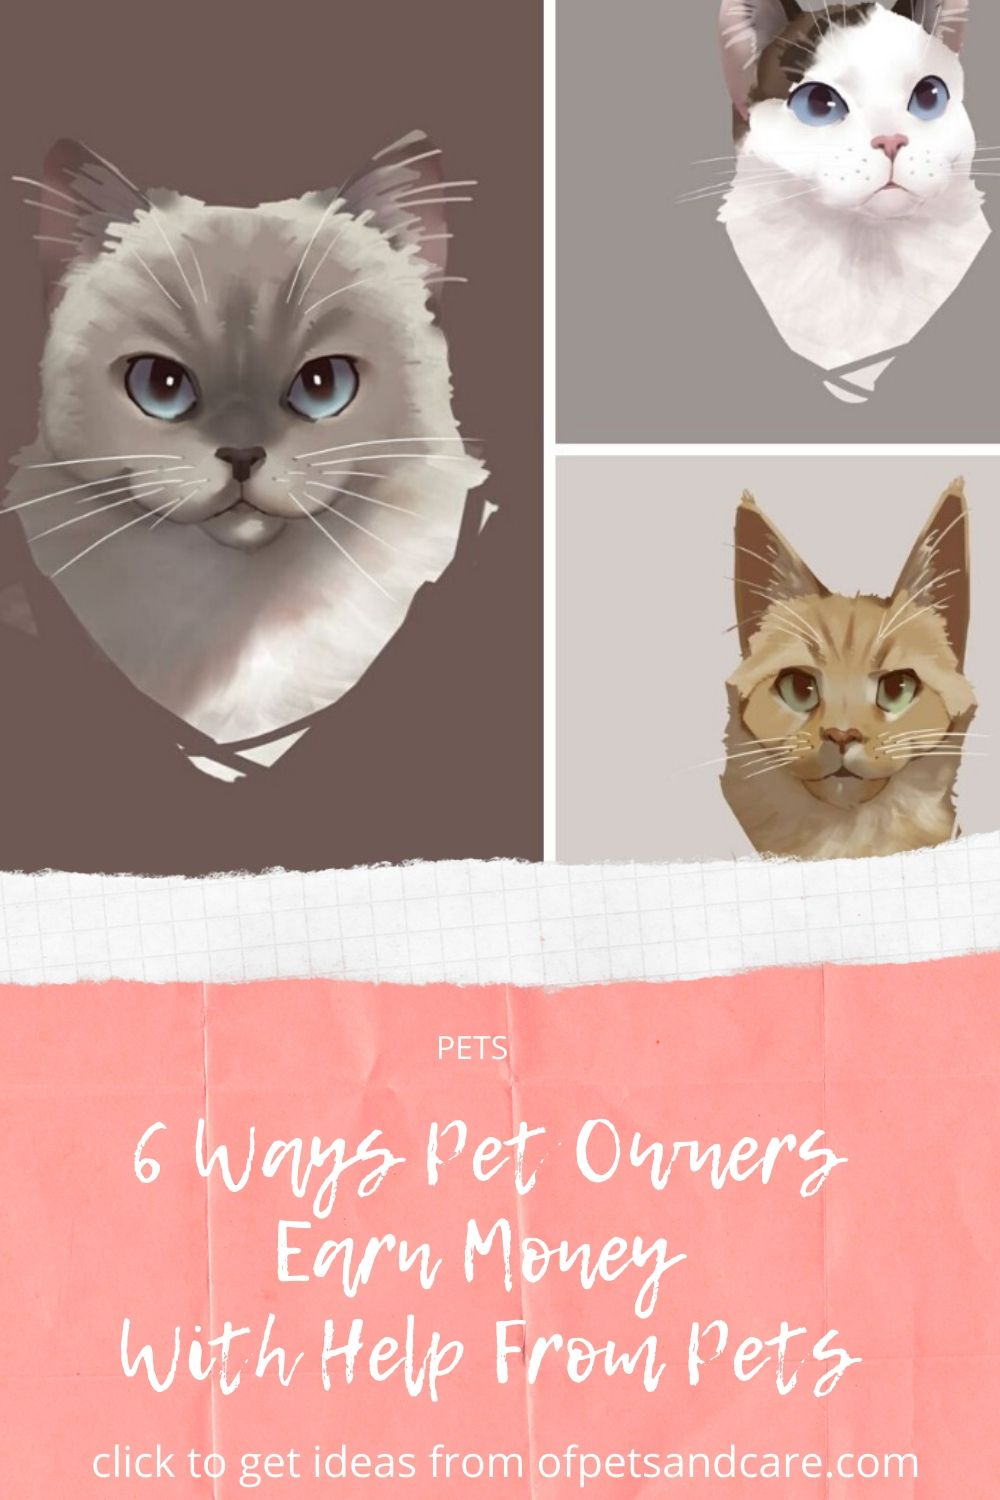 6 Ways Pet Owners Earn Money With Help From Pets